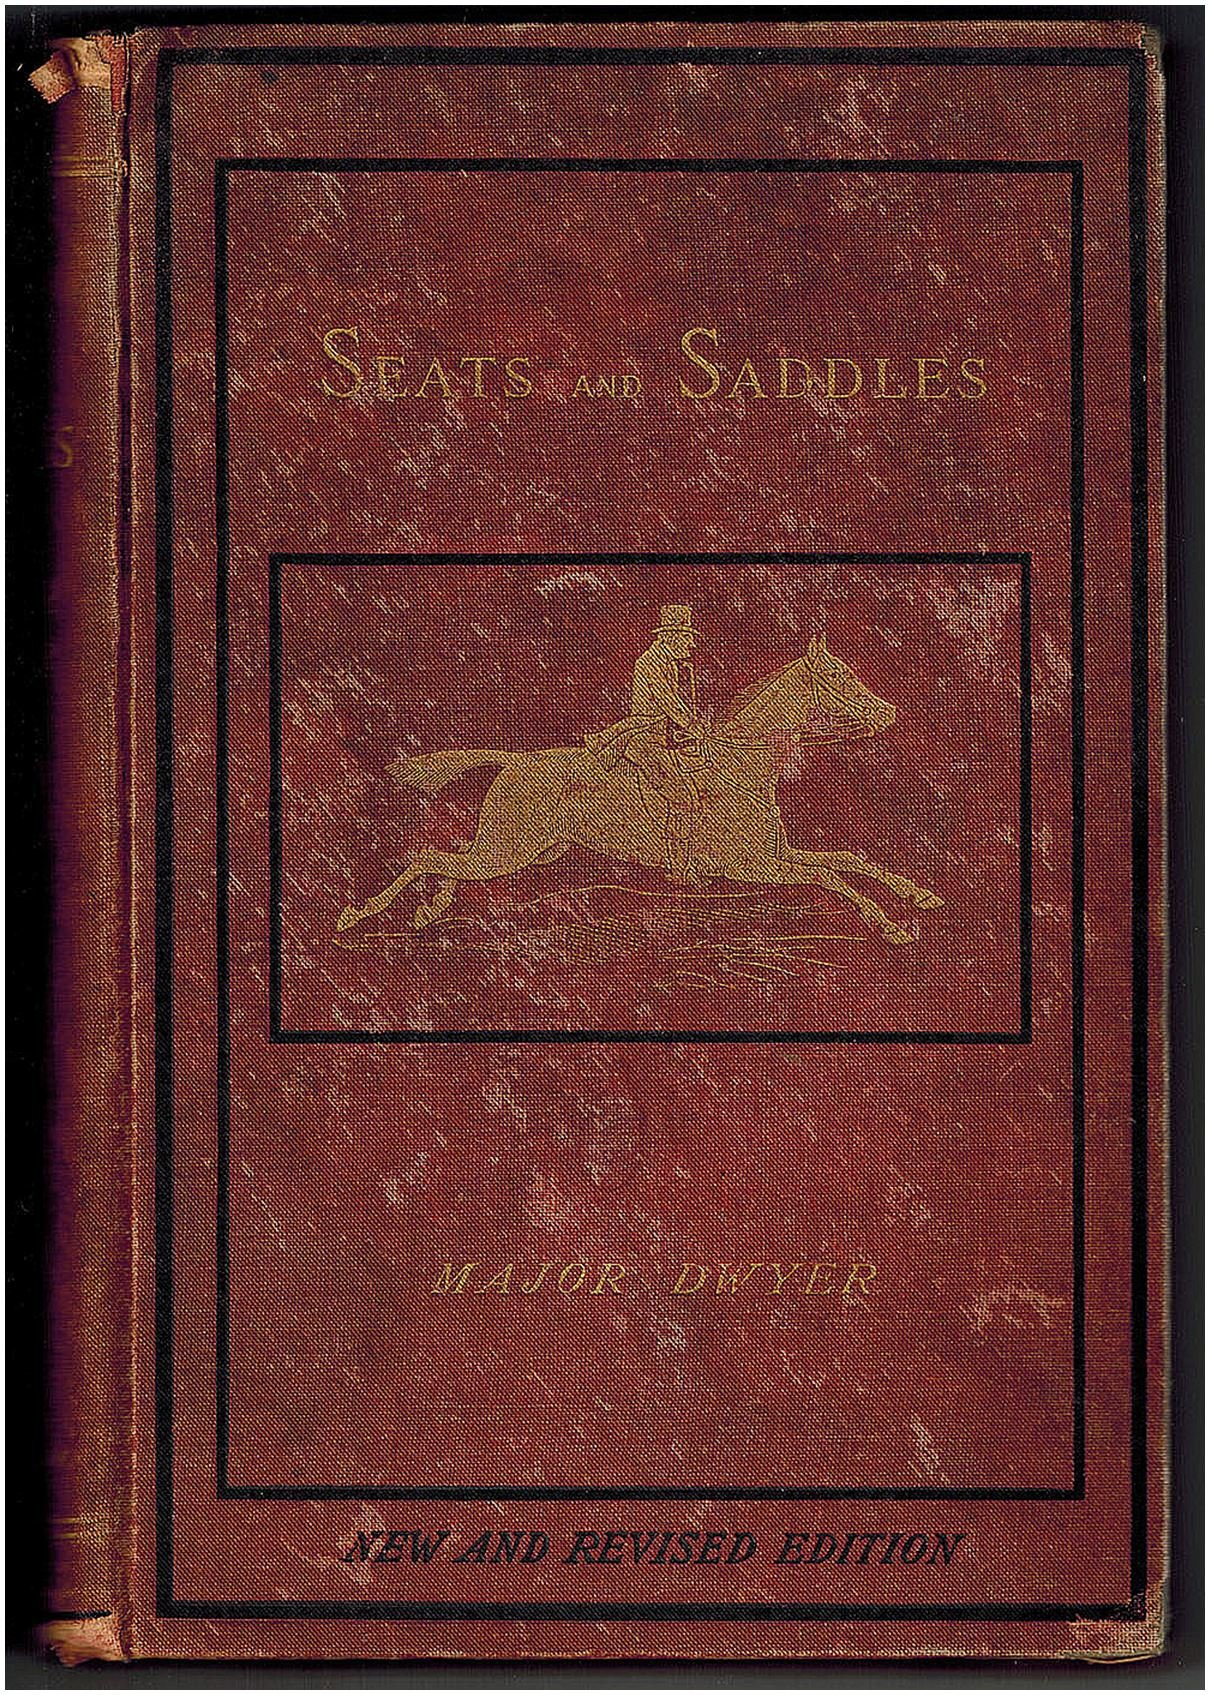 Seats and saddles,: Bits and bitting, draught and harness, and the prevention and cure of restiveness in horses